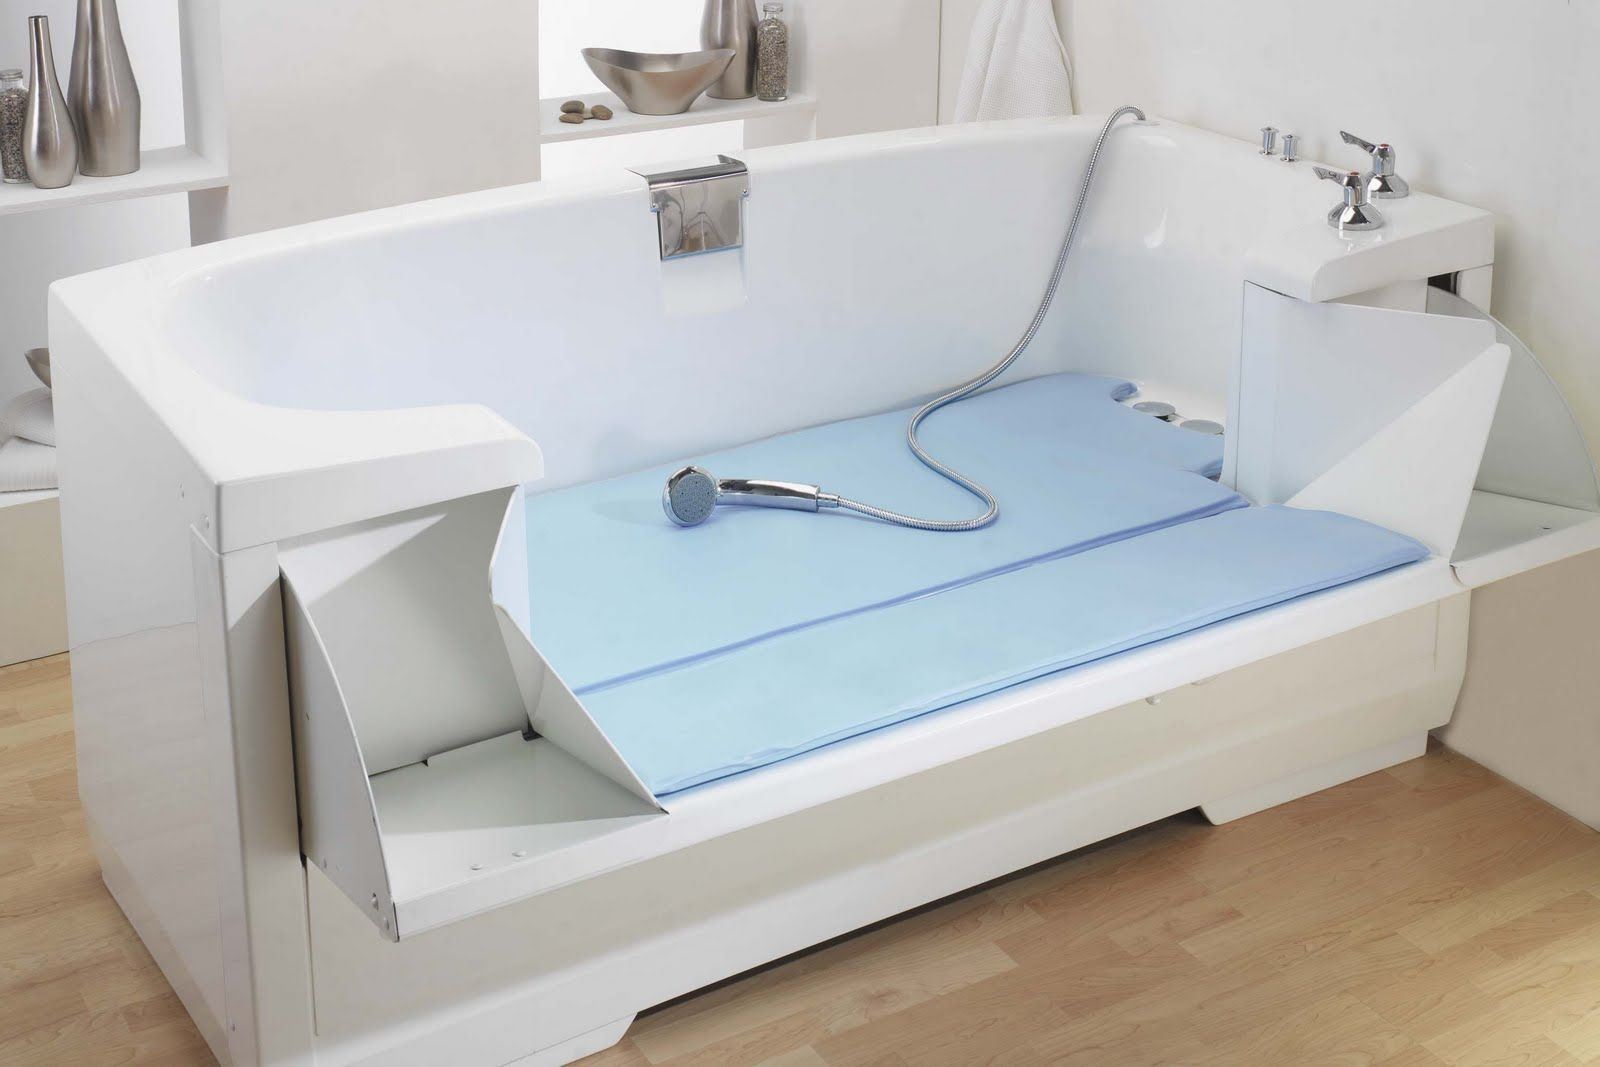 Attractive Handicapper Tubs | Bathtubs For The Elderly And Disabled | Disabled Bathroom